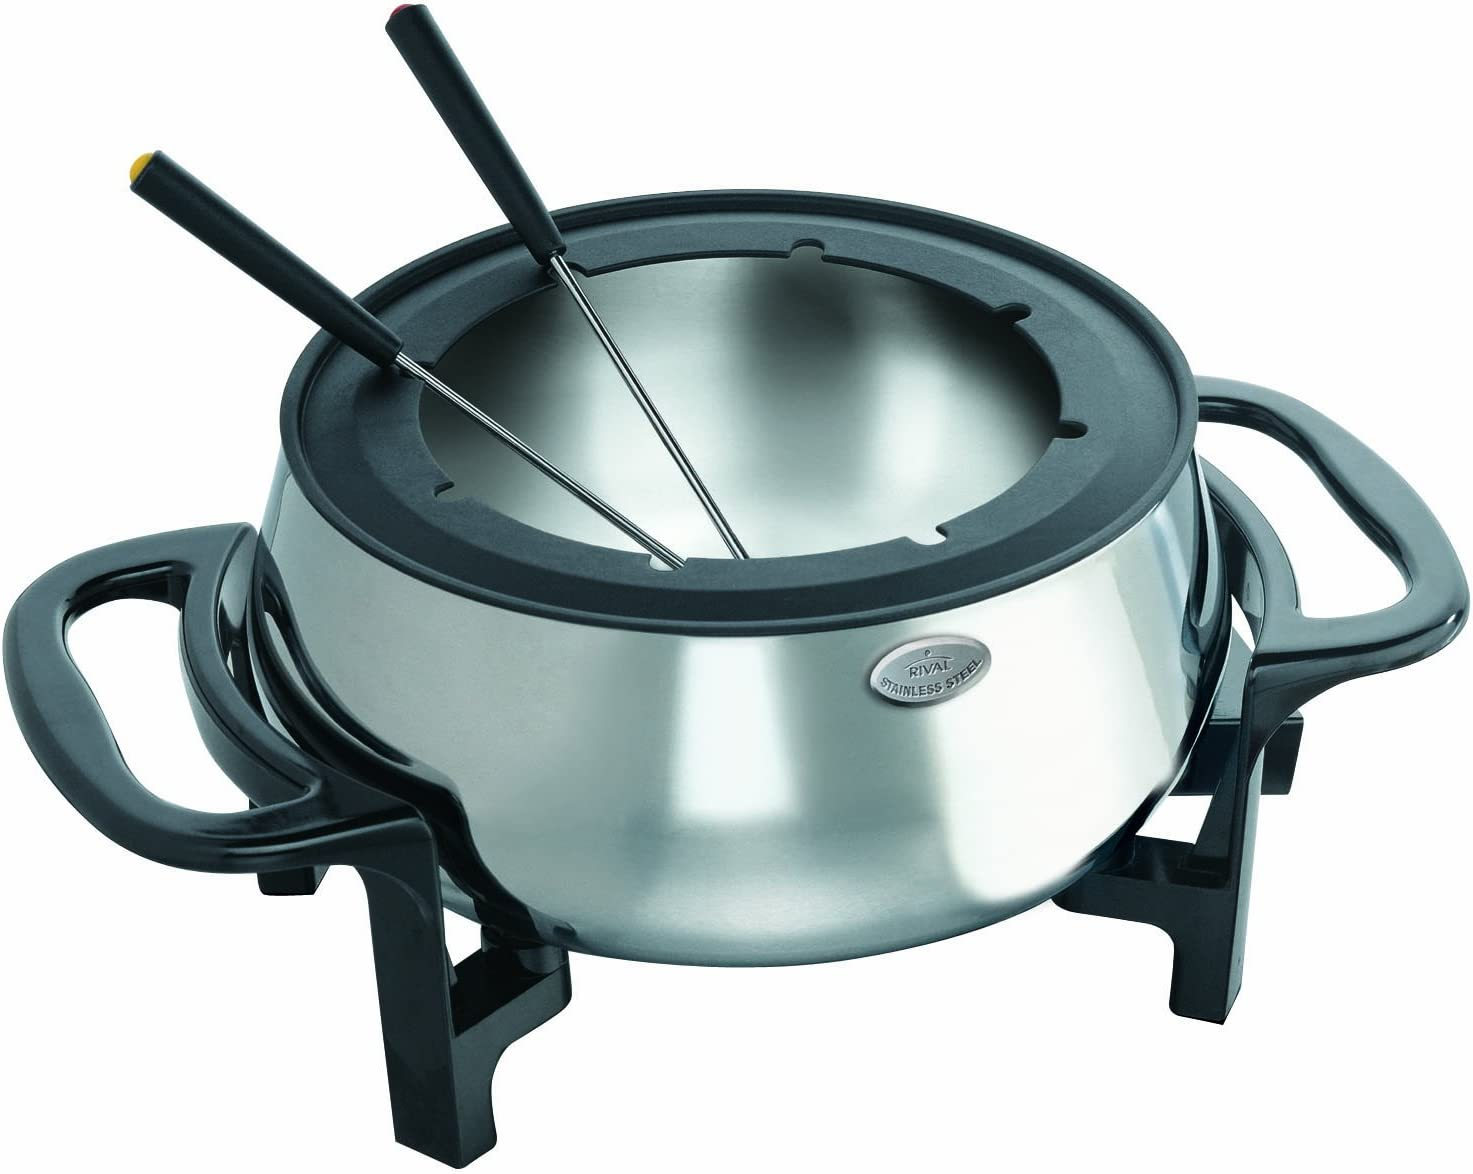 Rival Stainless Steel Electric Fondue Pot Set